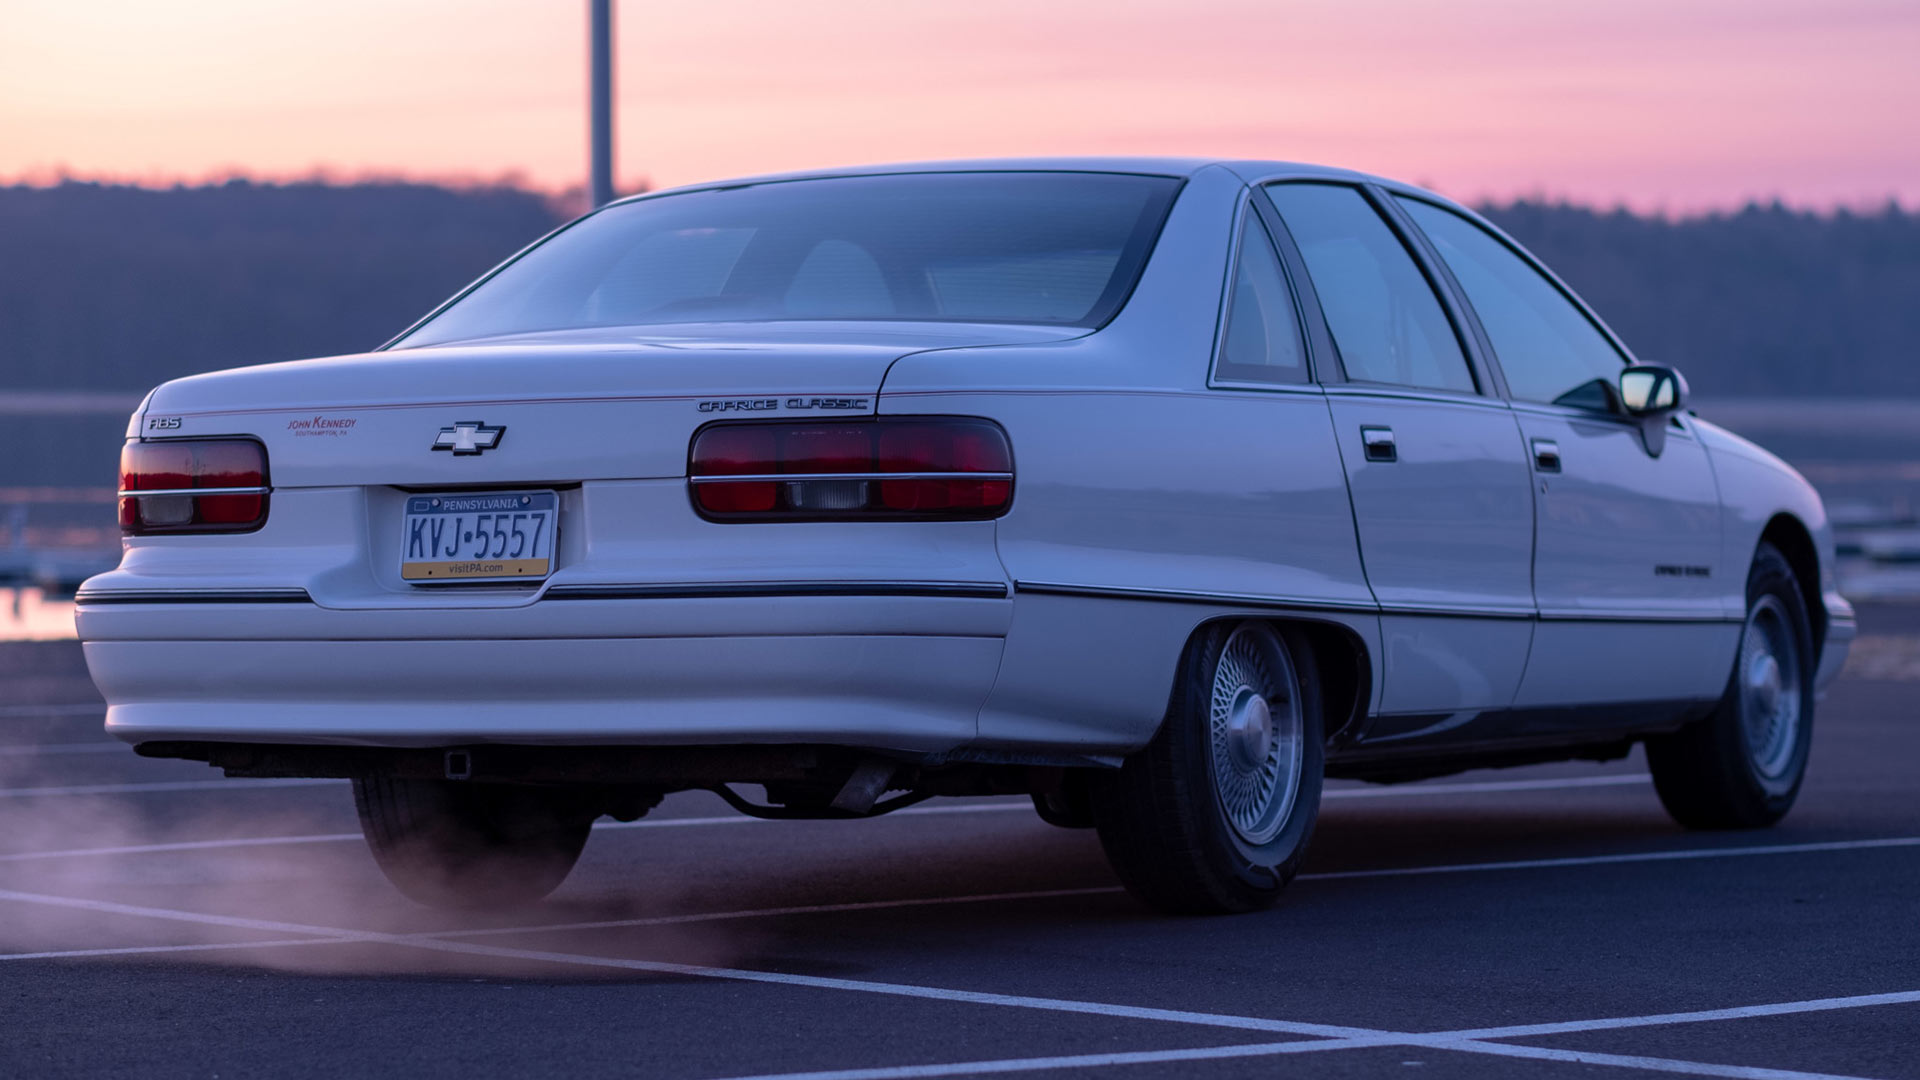 1991 Chevy Caprice Classic Bring a Trailer